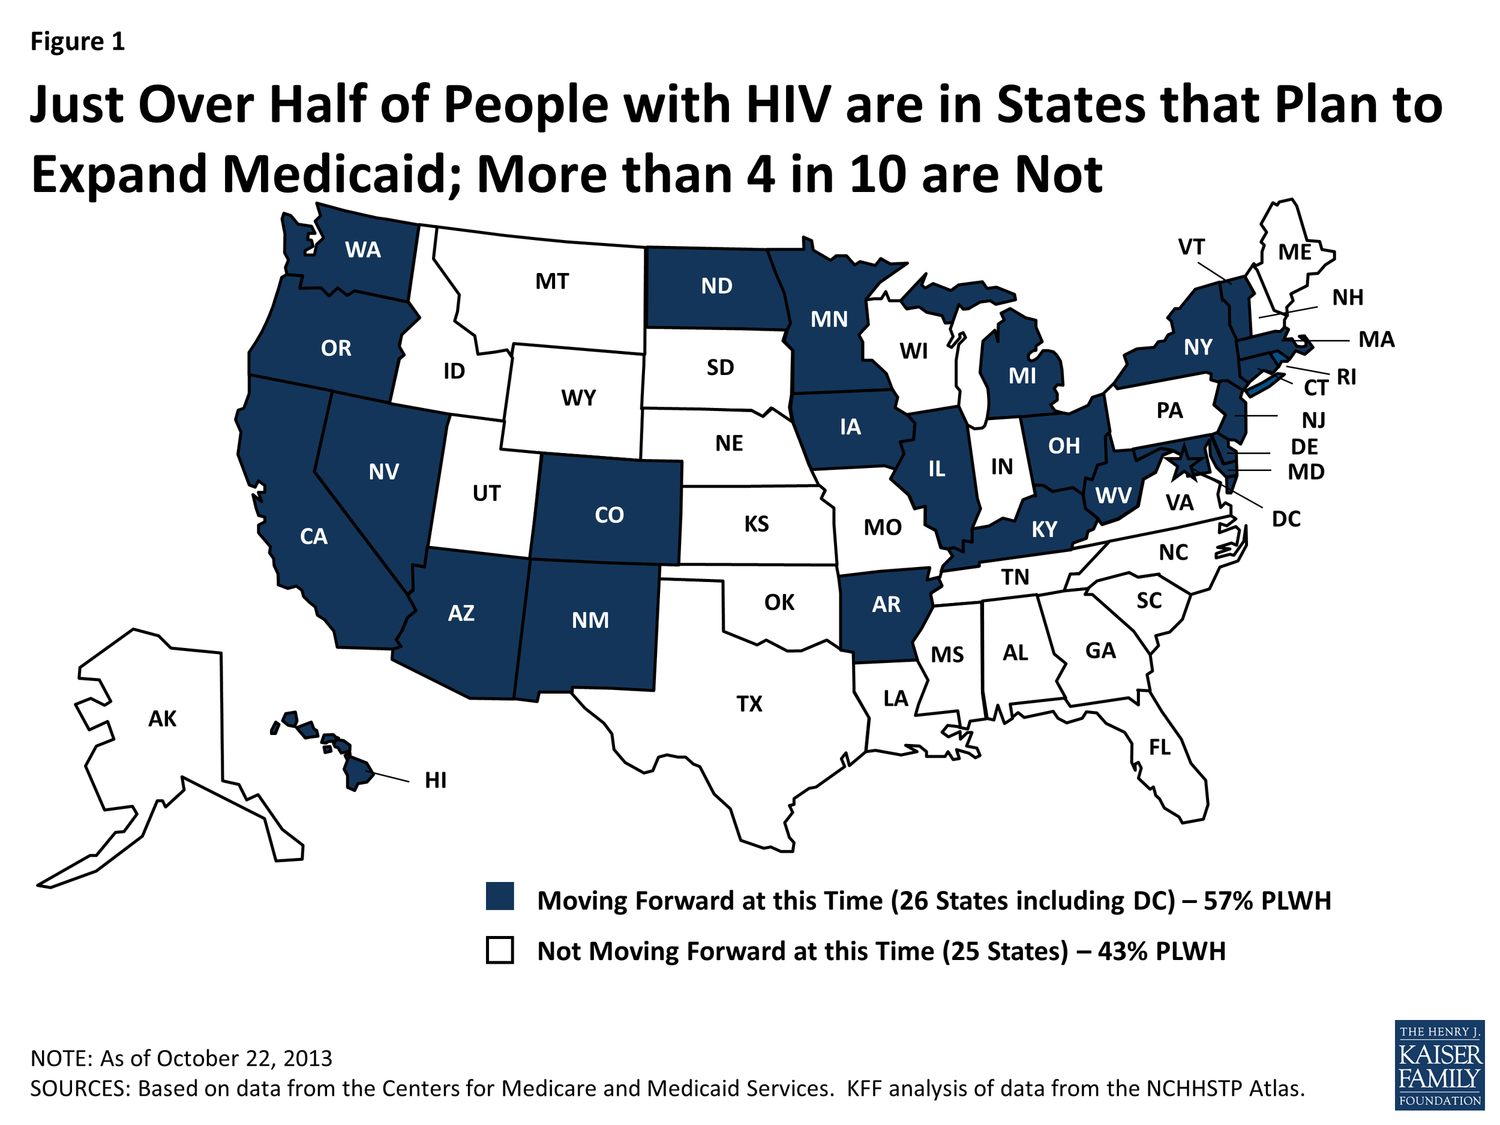 Map Showing in Blue States With Plans to Expand Medicaid